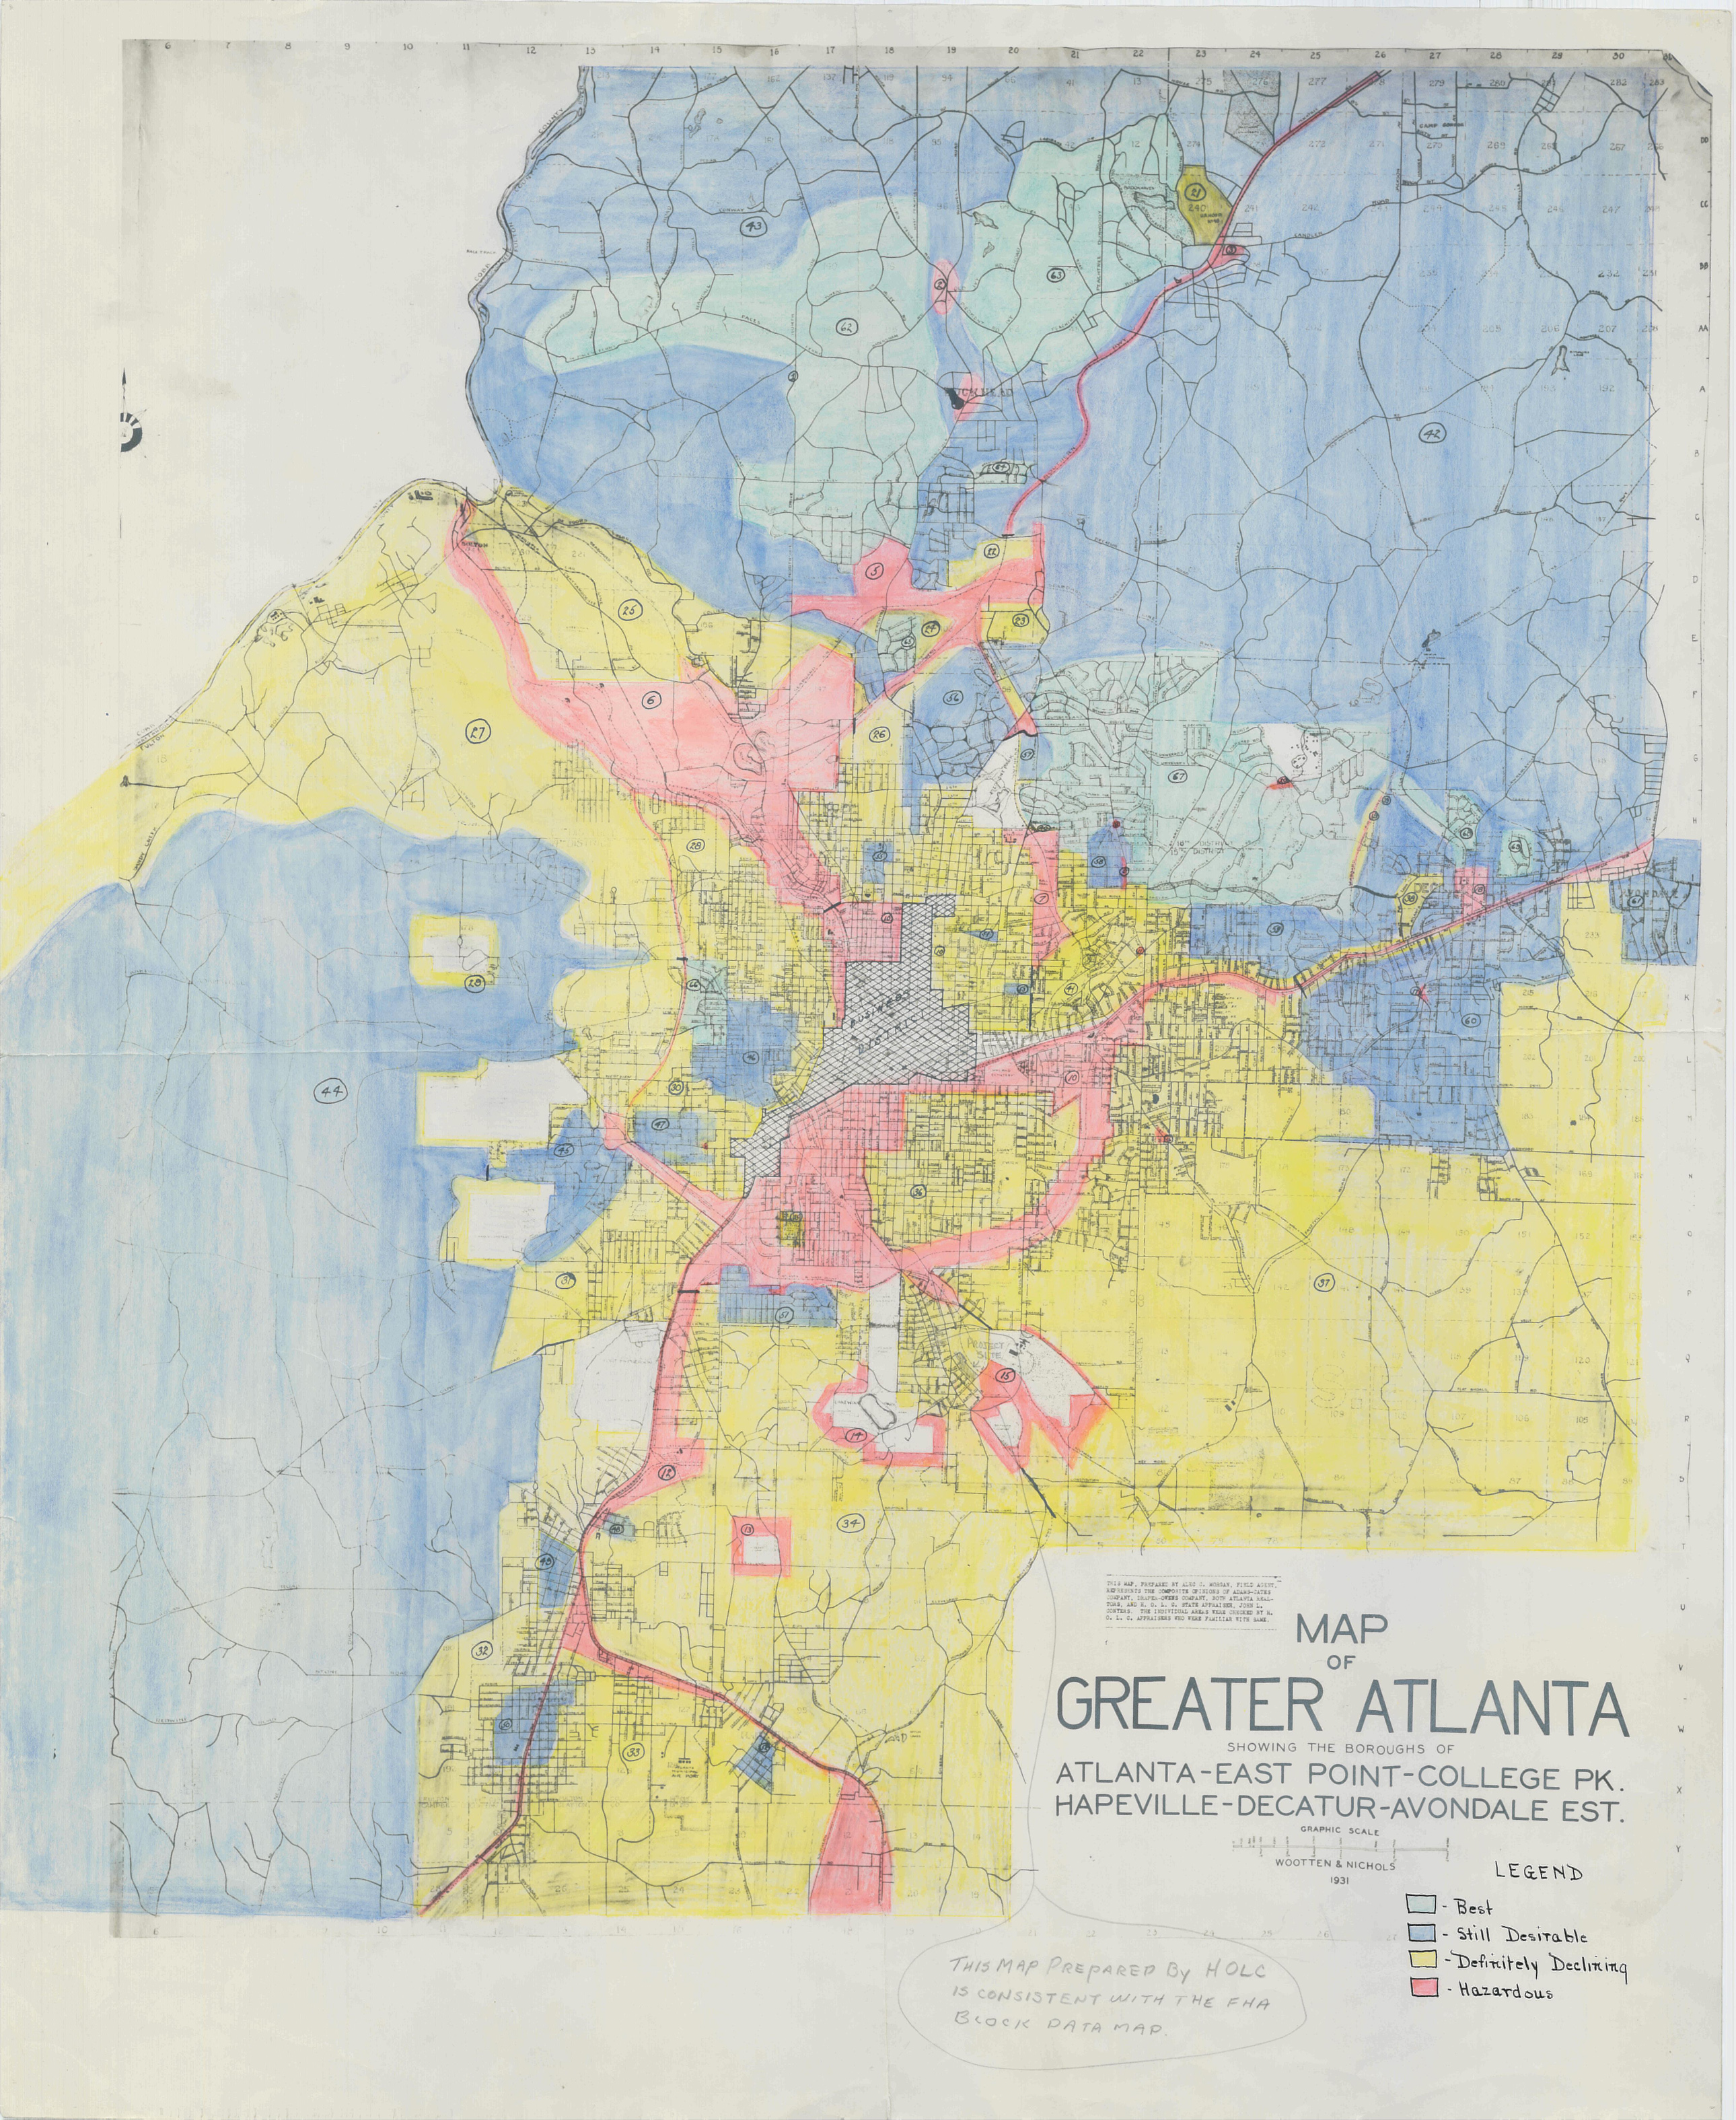 Redline Map For Greater Atlanta Georgia - Georgia map legend